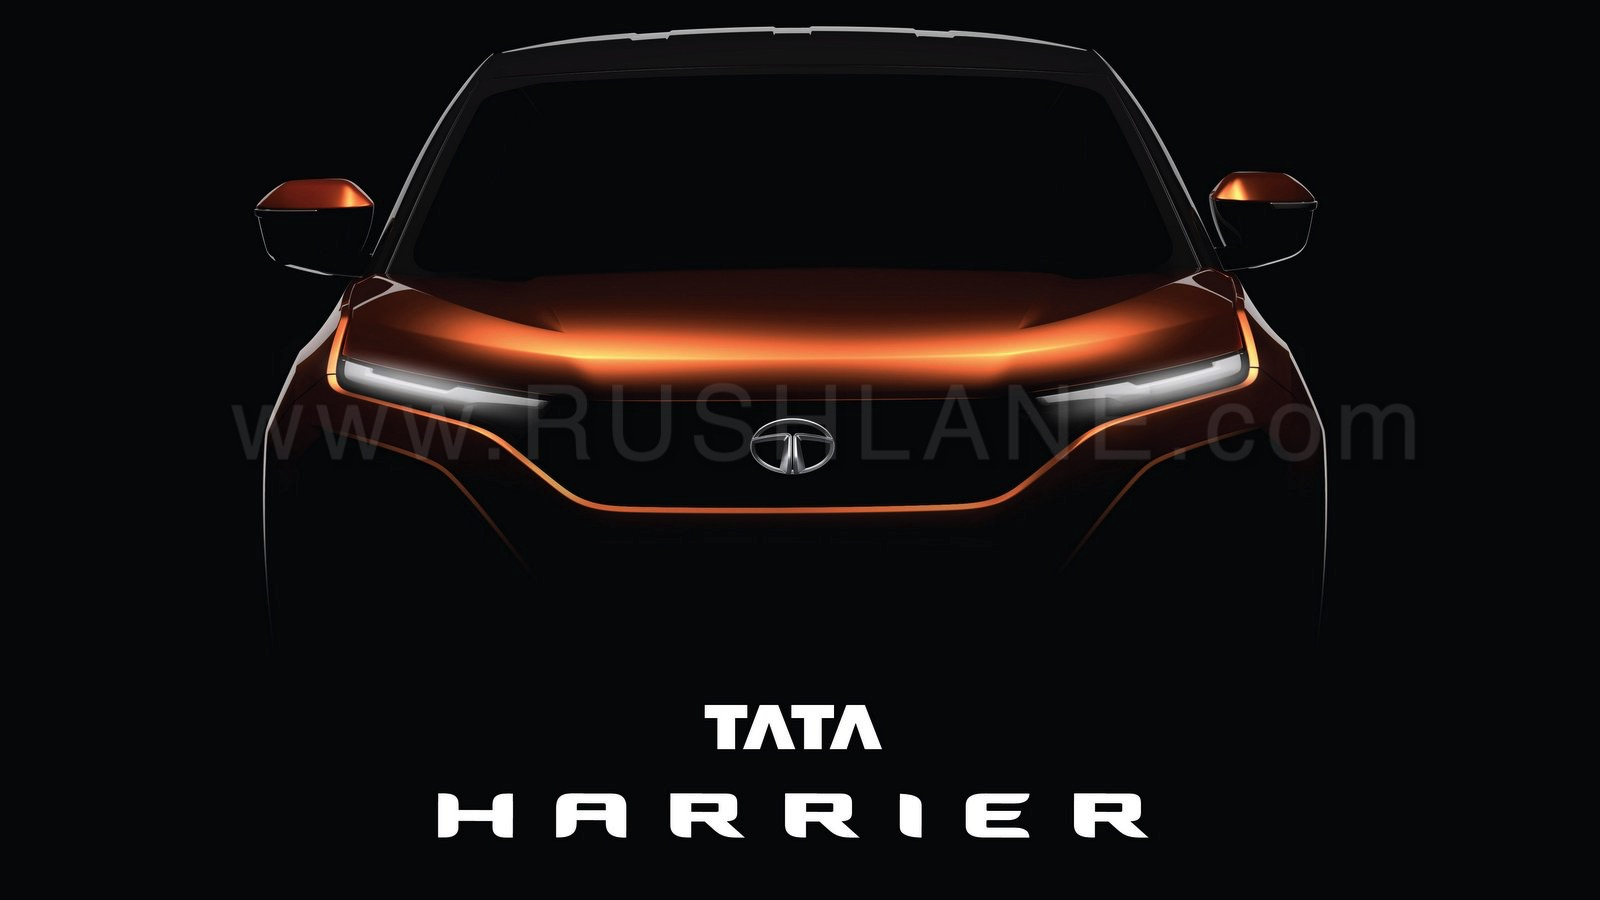 Tata H5X named Harrier - Official launch confirmed for ...